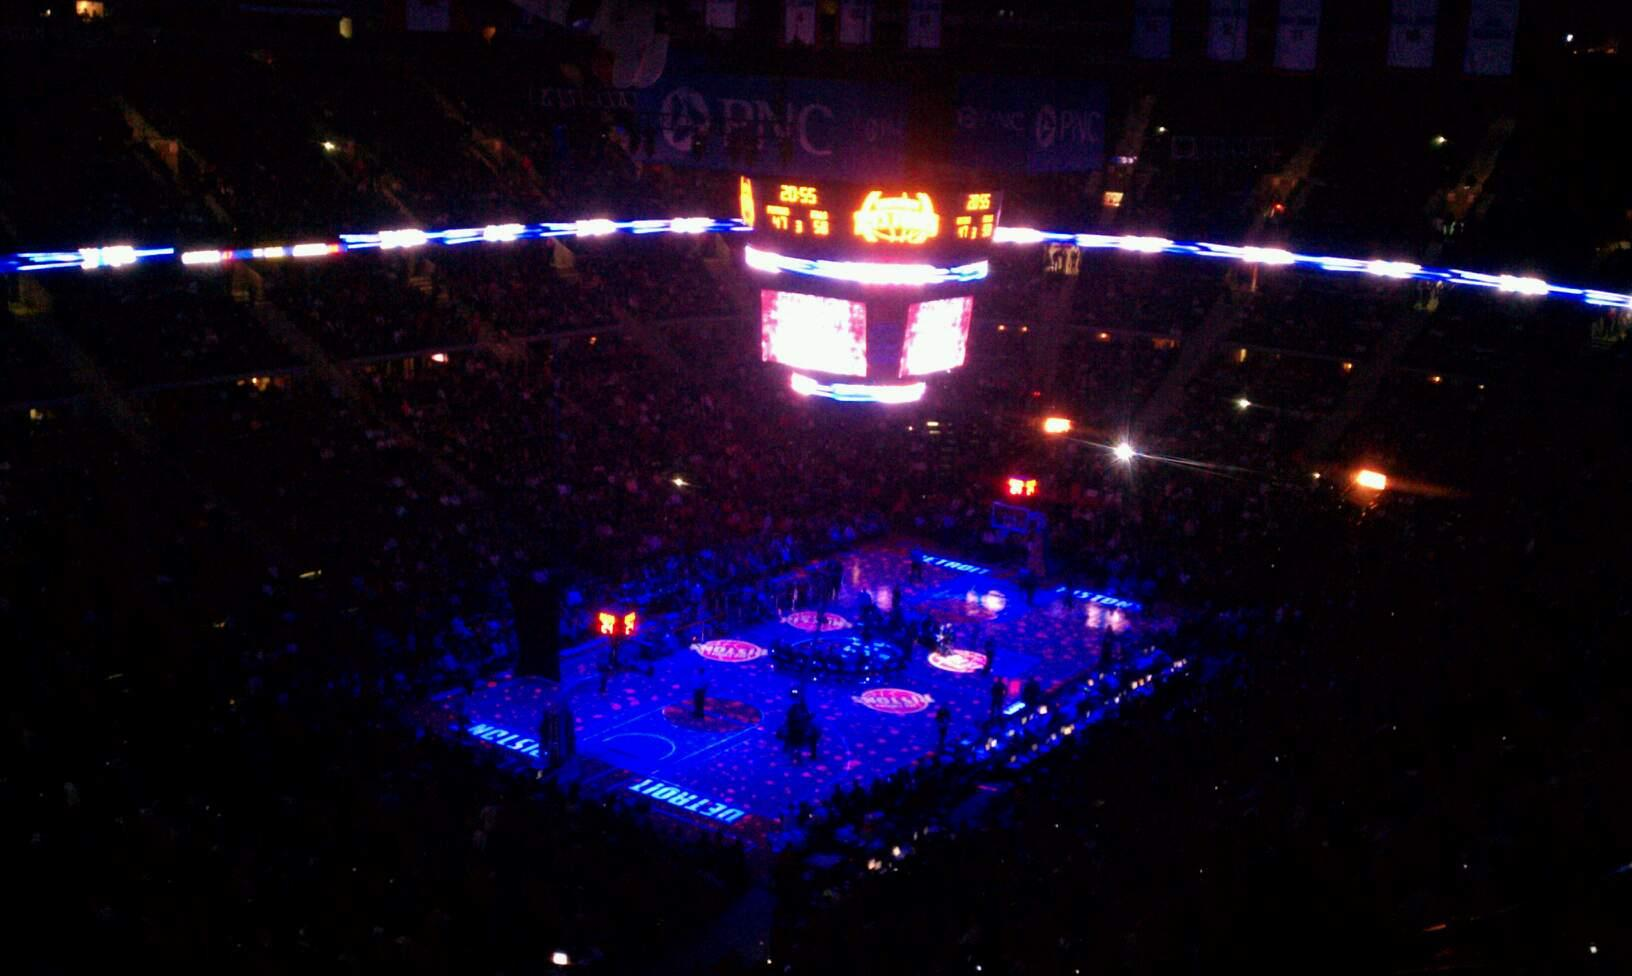 The Palace of Auburn Hills Section 220 Row 19 Seat 19